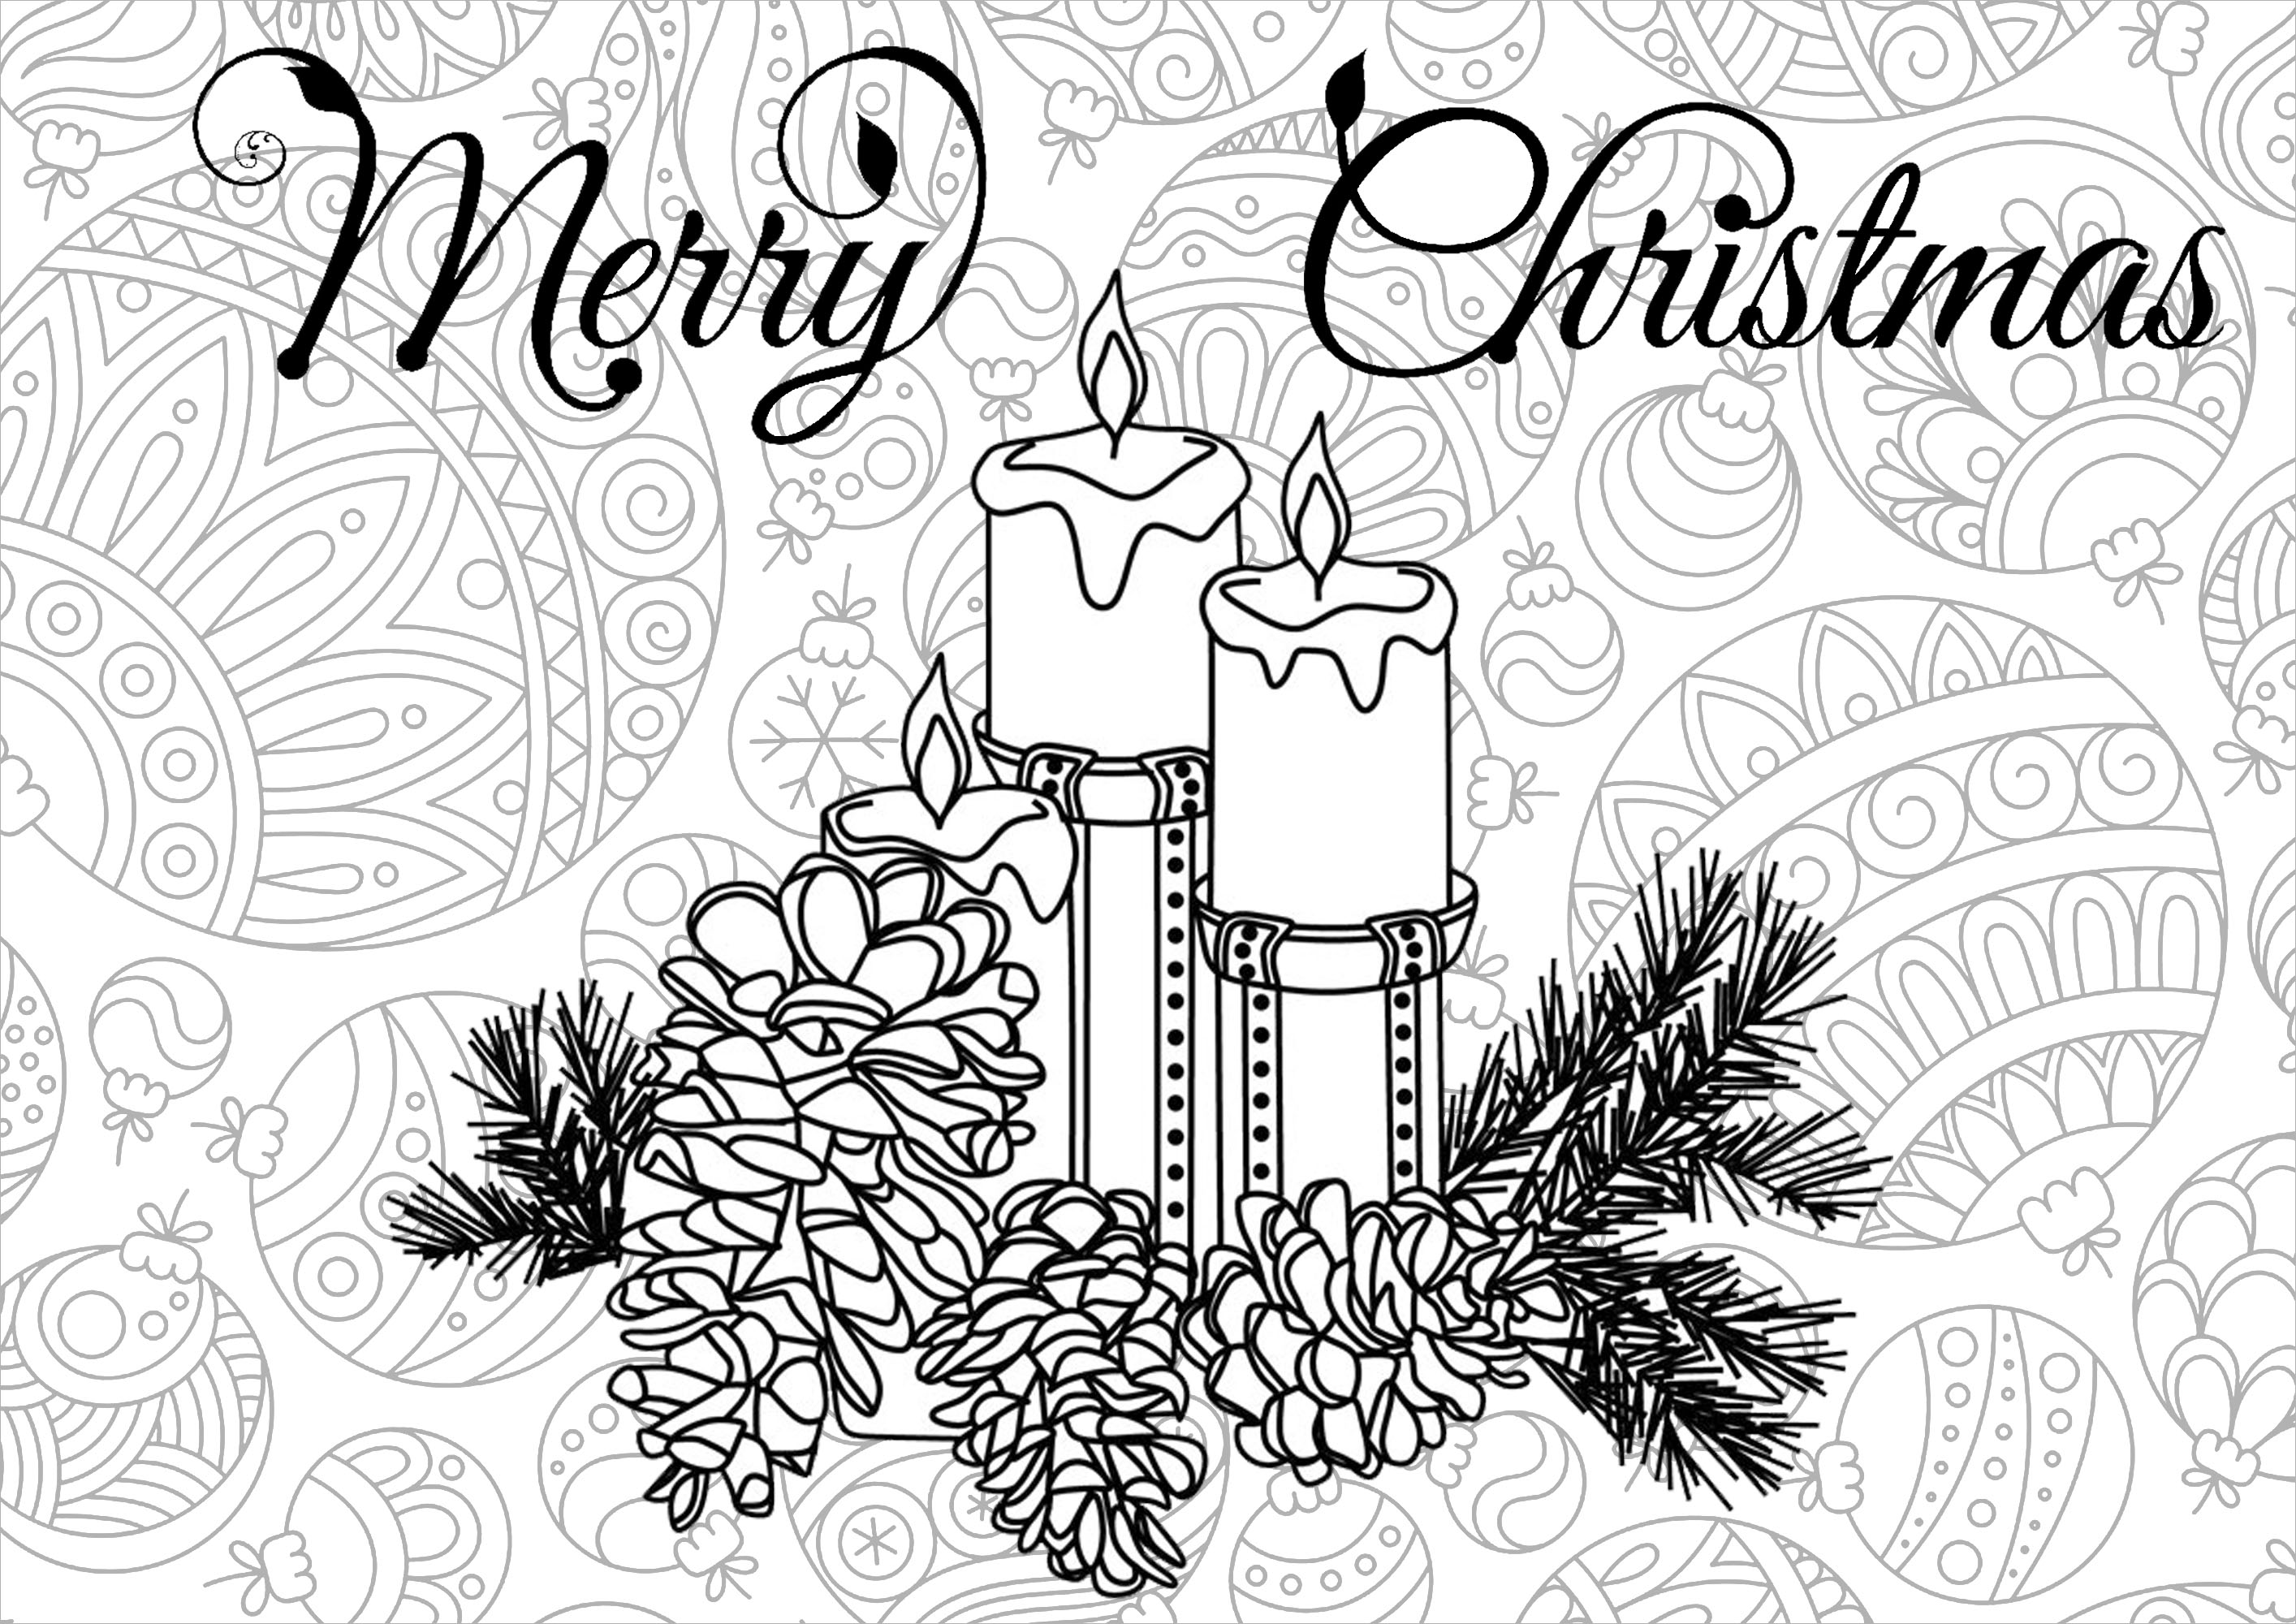 christmas detailed coloring pages | Christmas candles and balls - Christmas Adult Coloring Pages